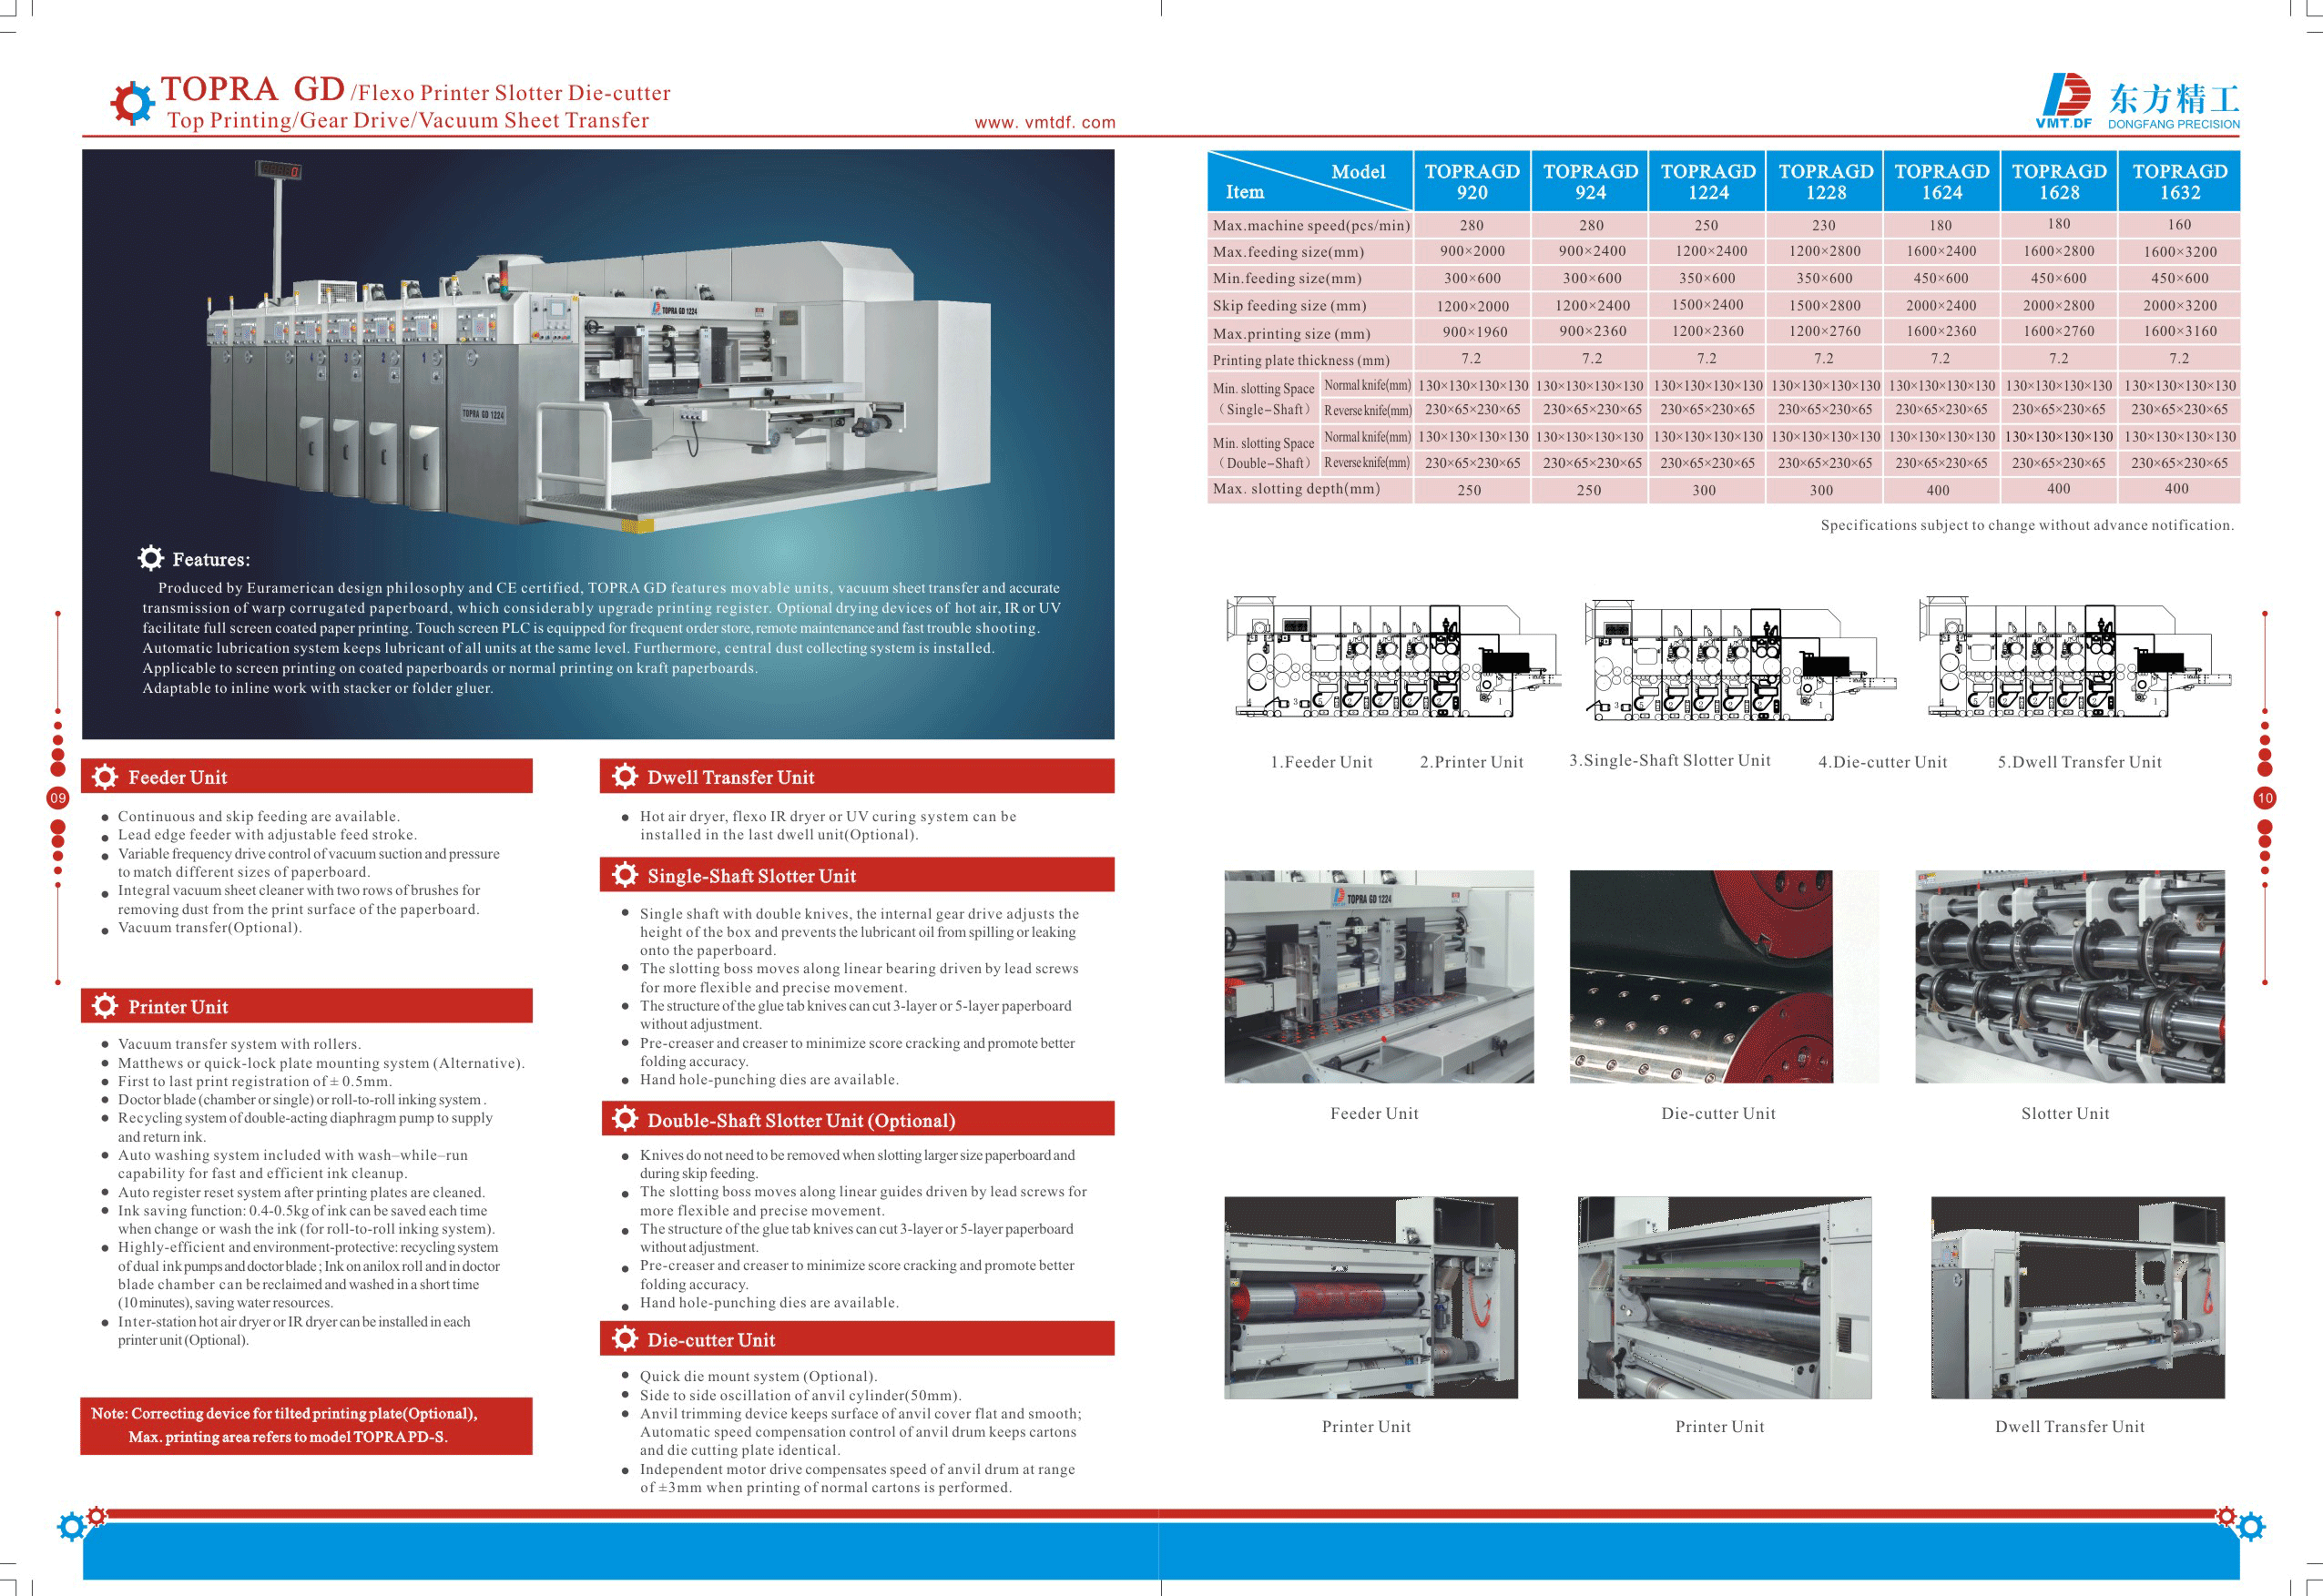 Learn more about the Topra GD Flexo Printer Slotter Die Cutter in the Dong Fang brochure.